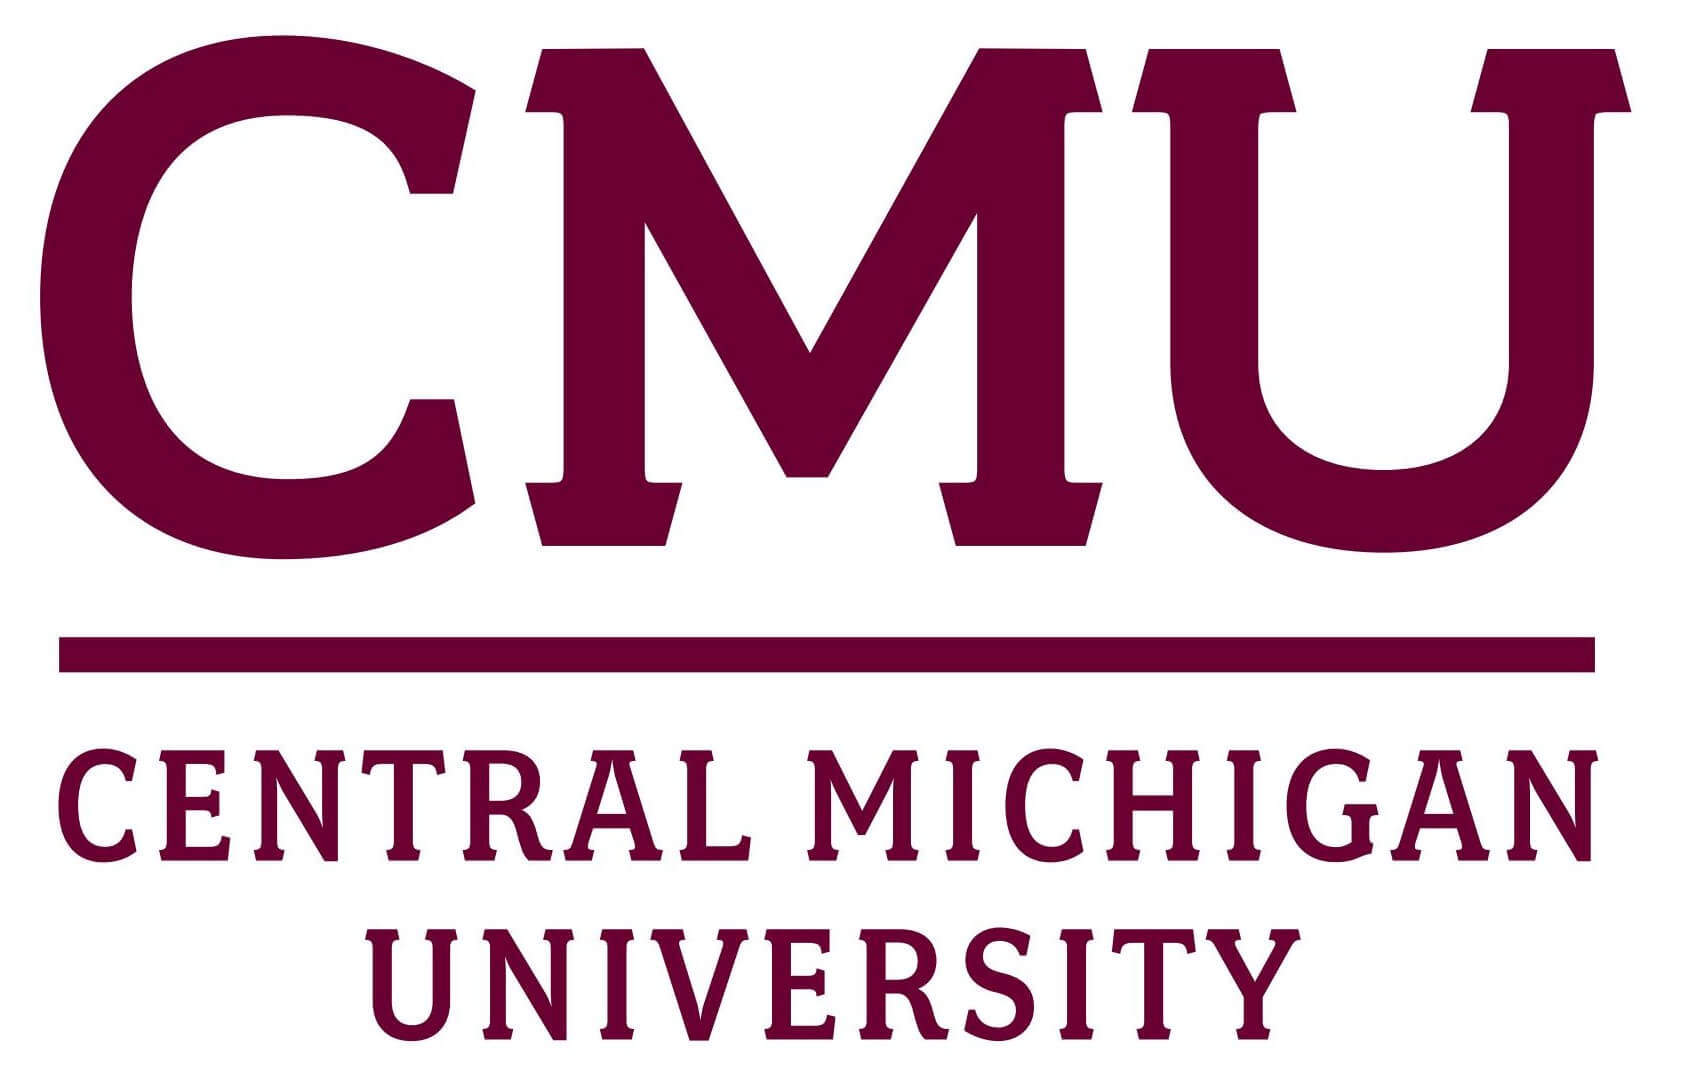 CMU Central Michigan University Logo